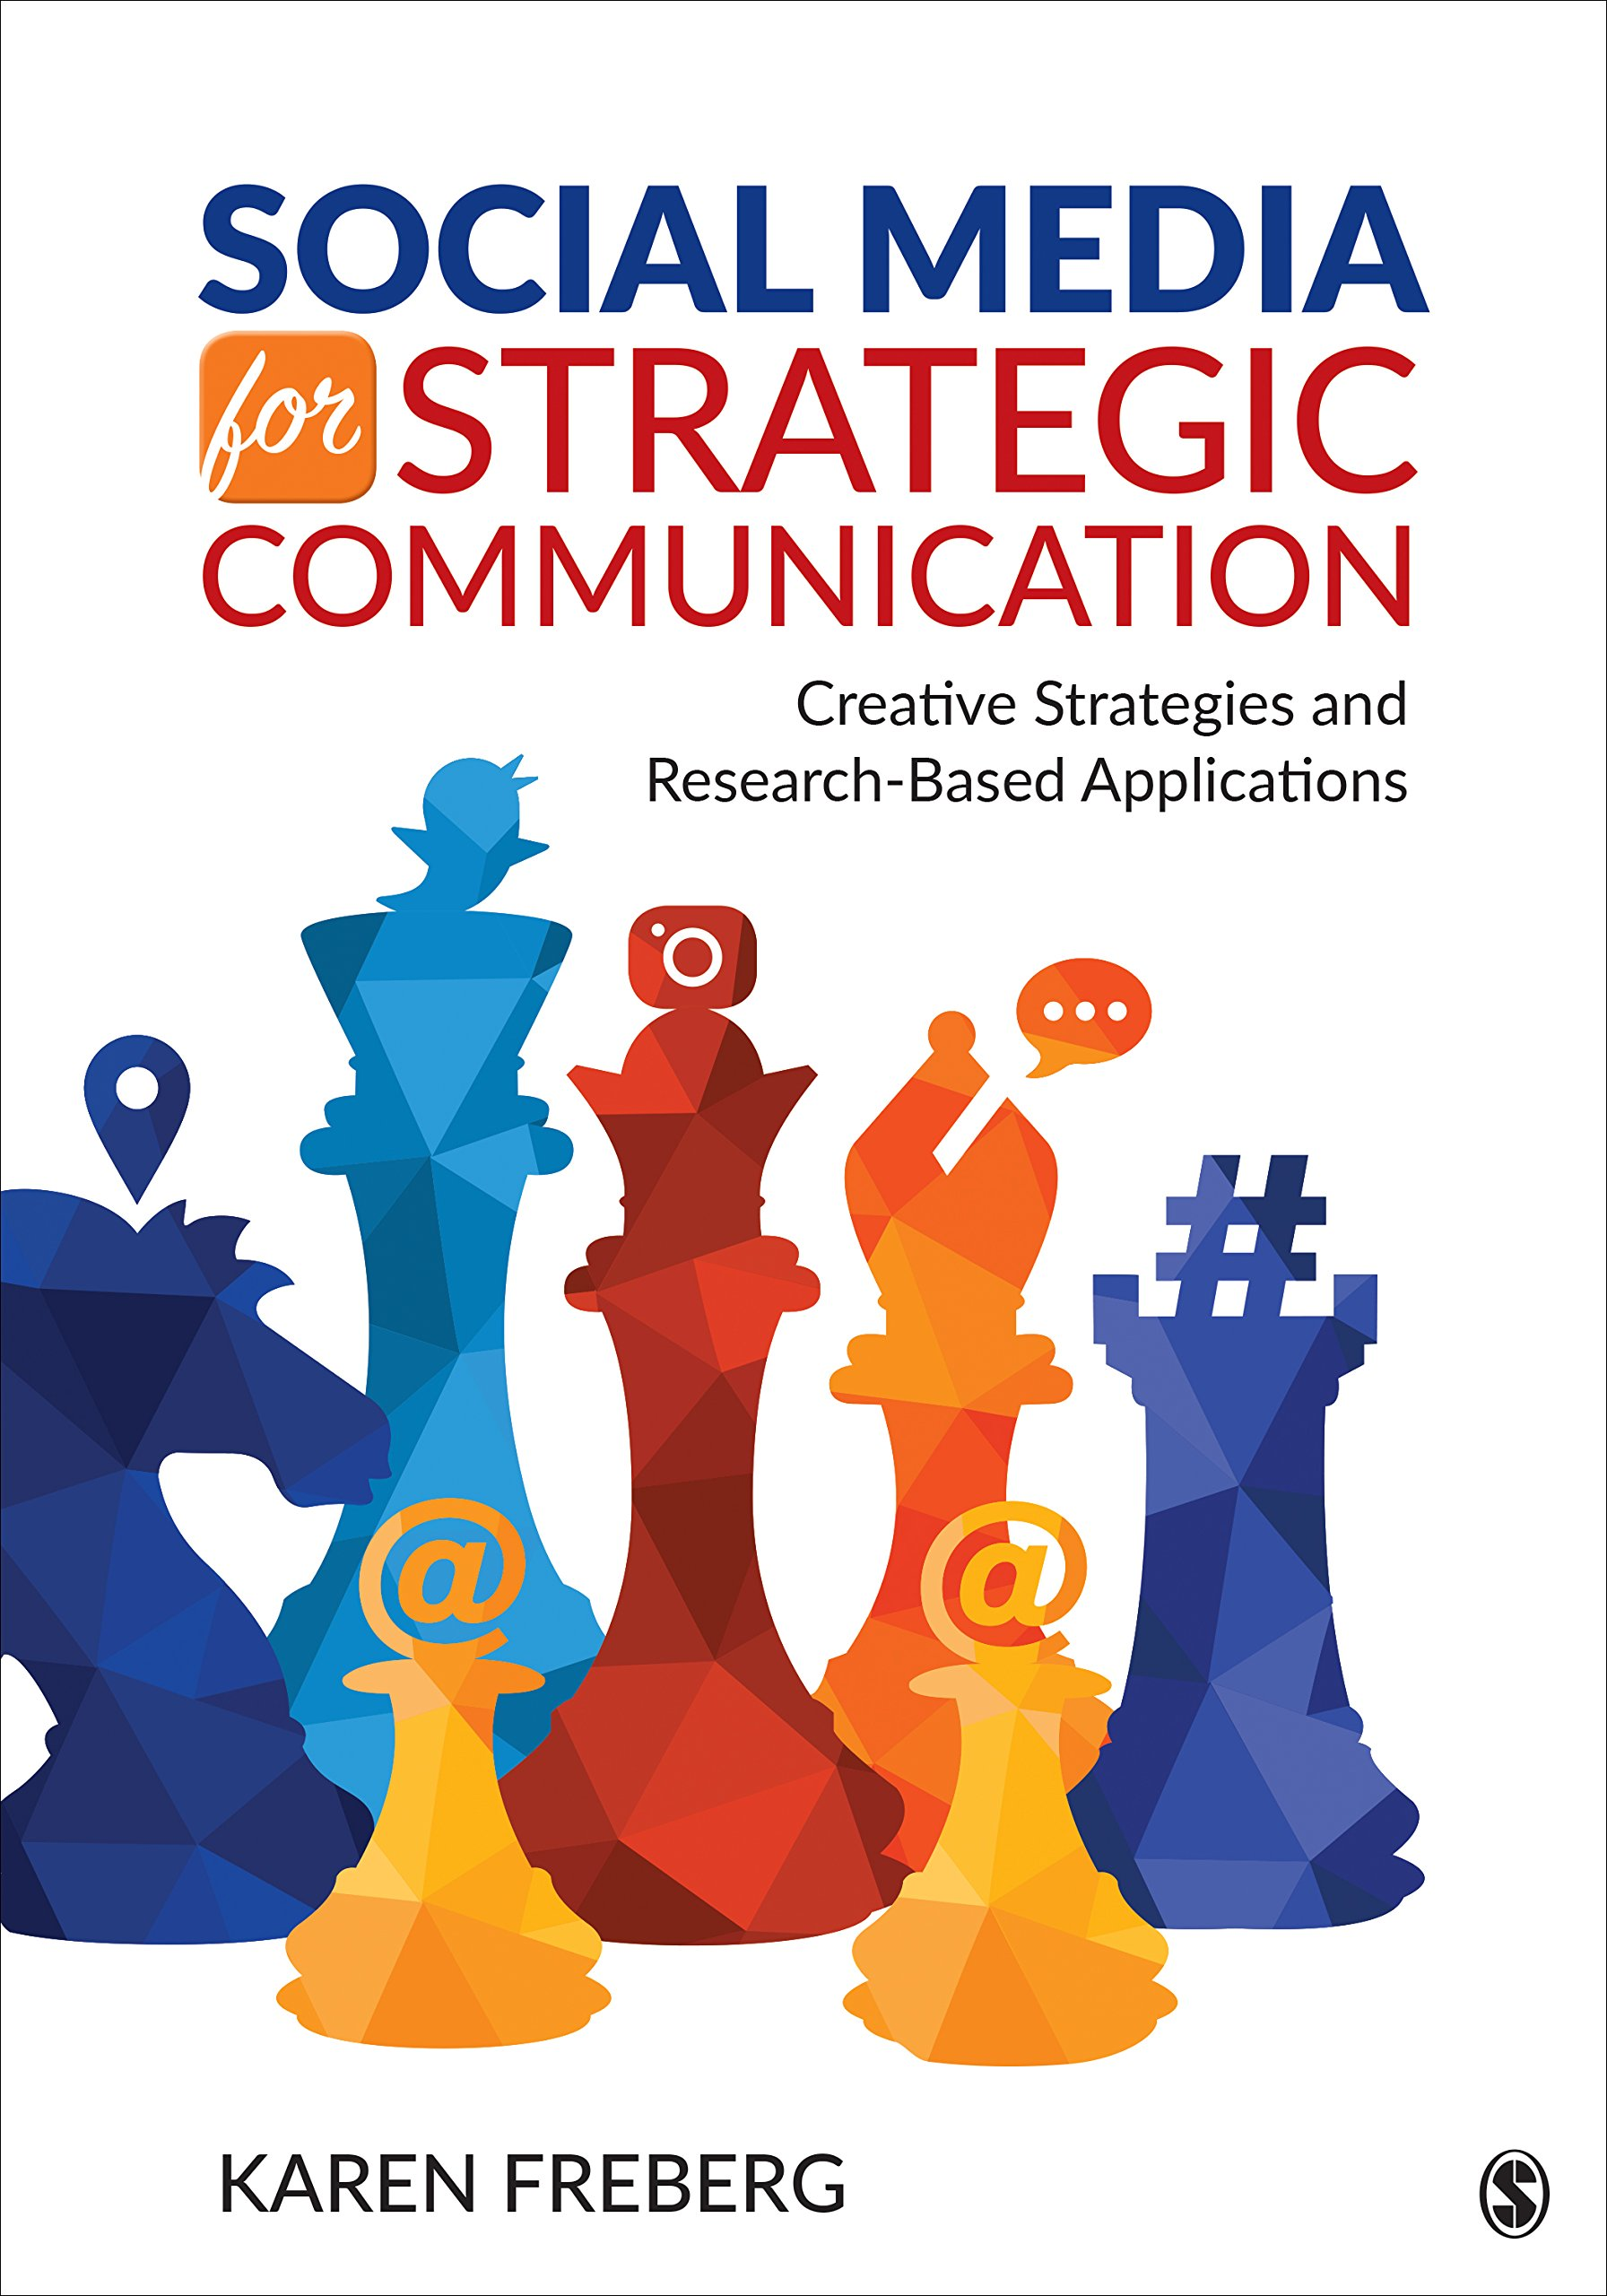 Social Media for Strategic Communication: Creative Strategies and Research-Based  Applications Paperback – 12 Sep 2018